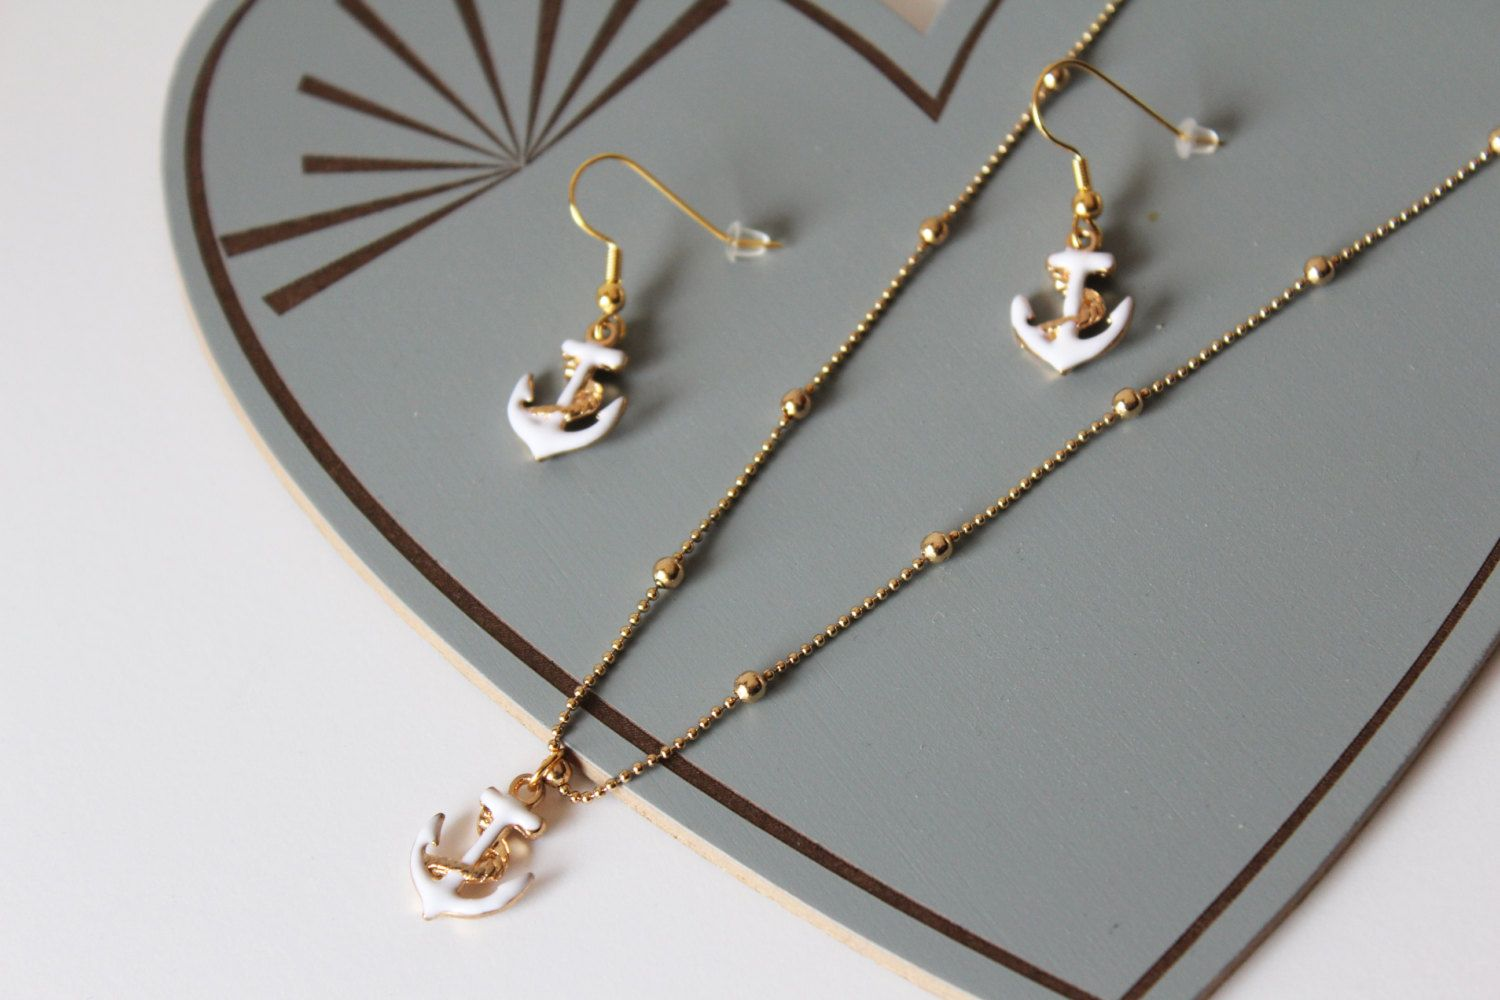 White Anchor Necklace & Earrings - Nautical Gold Jewelry Set / Dainty Anchor Charm Gold Chain / Refuse to Sink, Be Your Own Anchor Girl Gift by MaisonMagnolia on Etsy